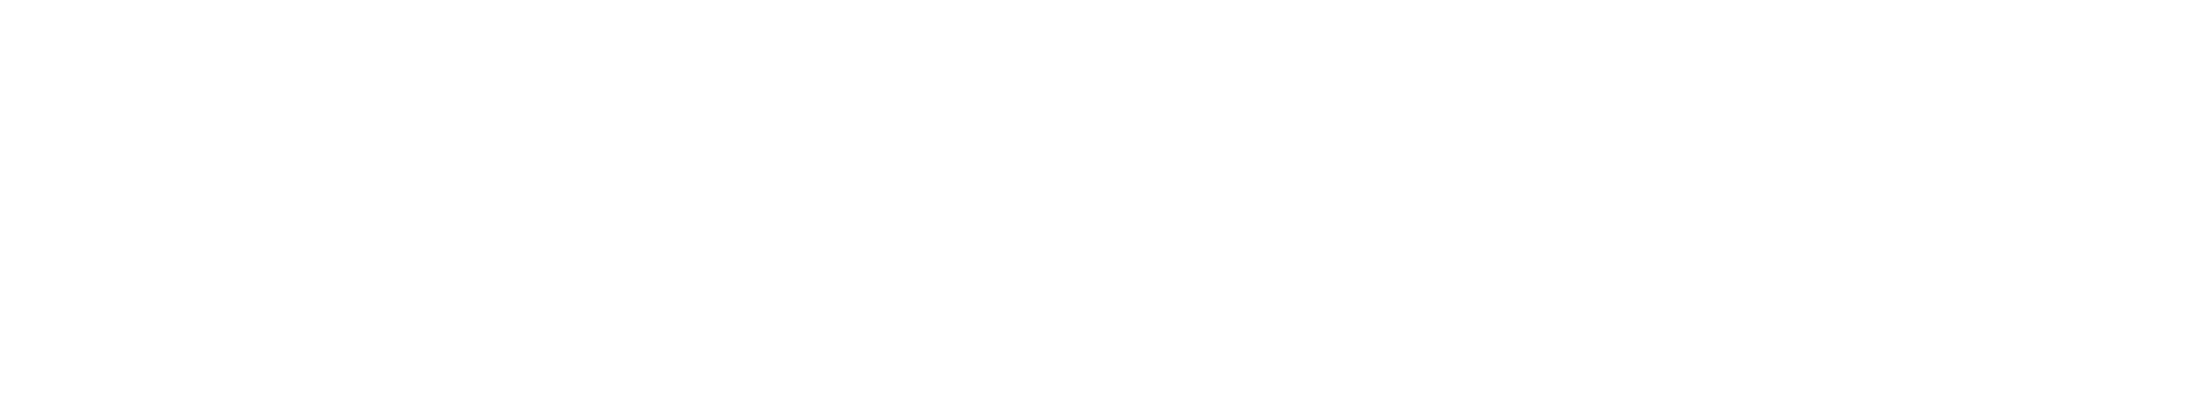 McMillan Electric